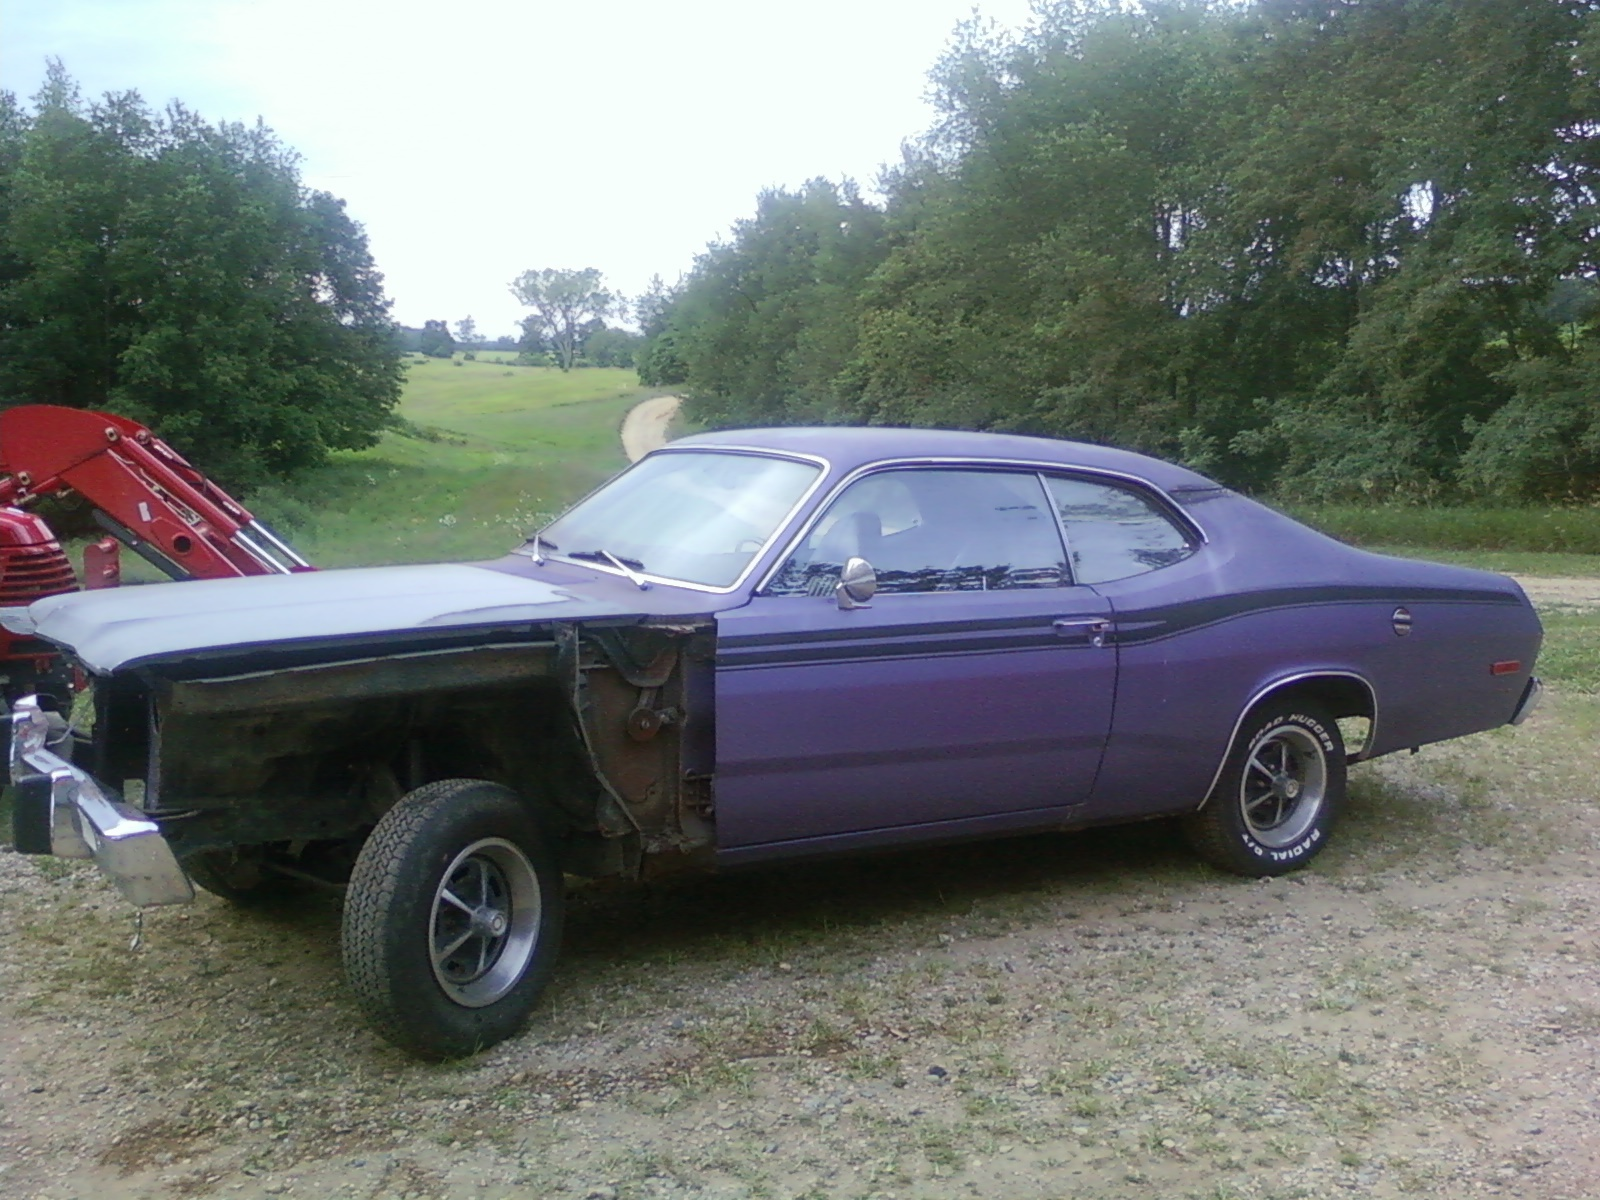 Holleyj1 1973 Plymouth Duster Specs Photos Modification Info At Barracuda Wiring Diagram 33542340001 Original